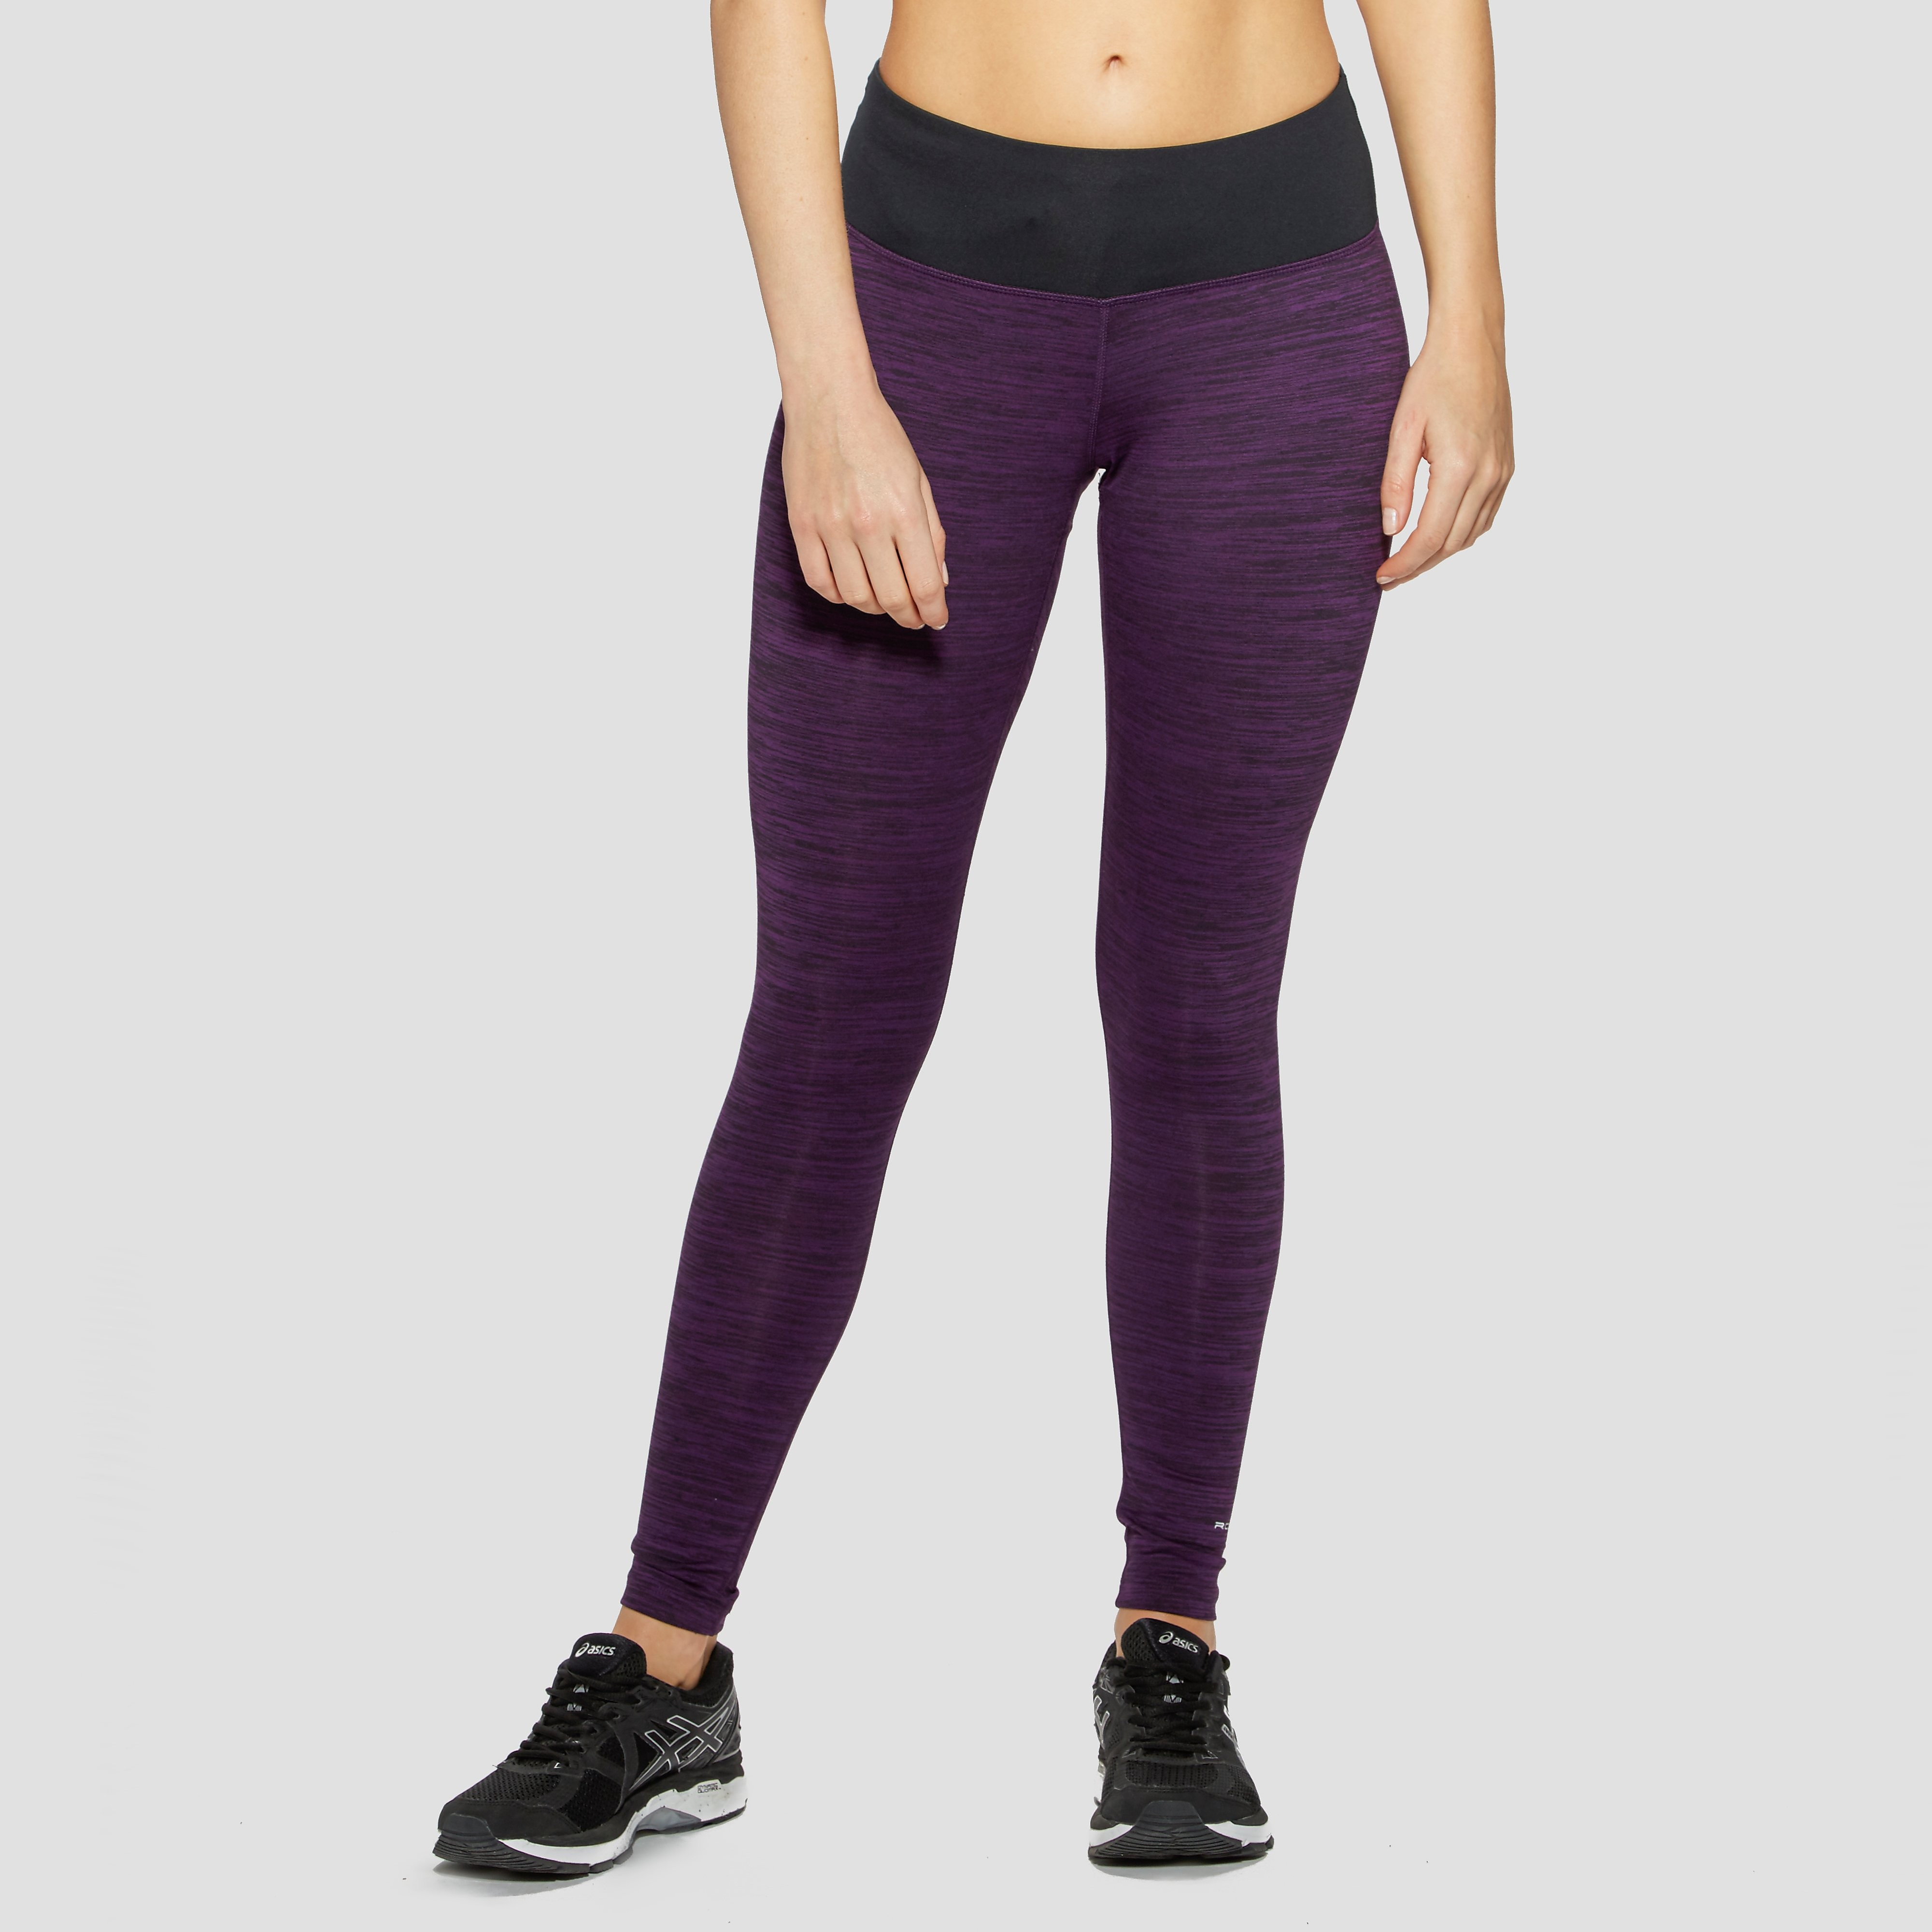 Ronhill Momentum Victory Women's Tights